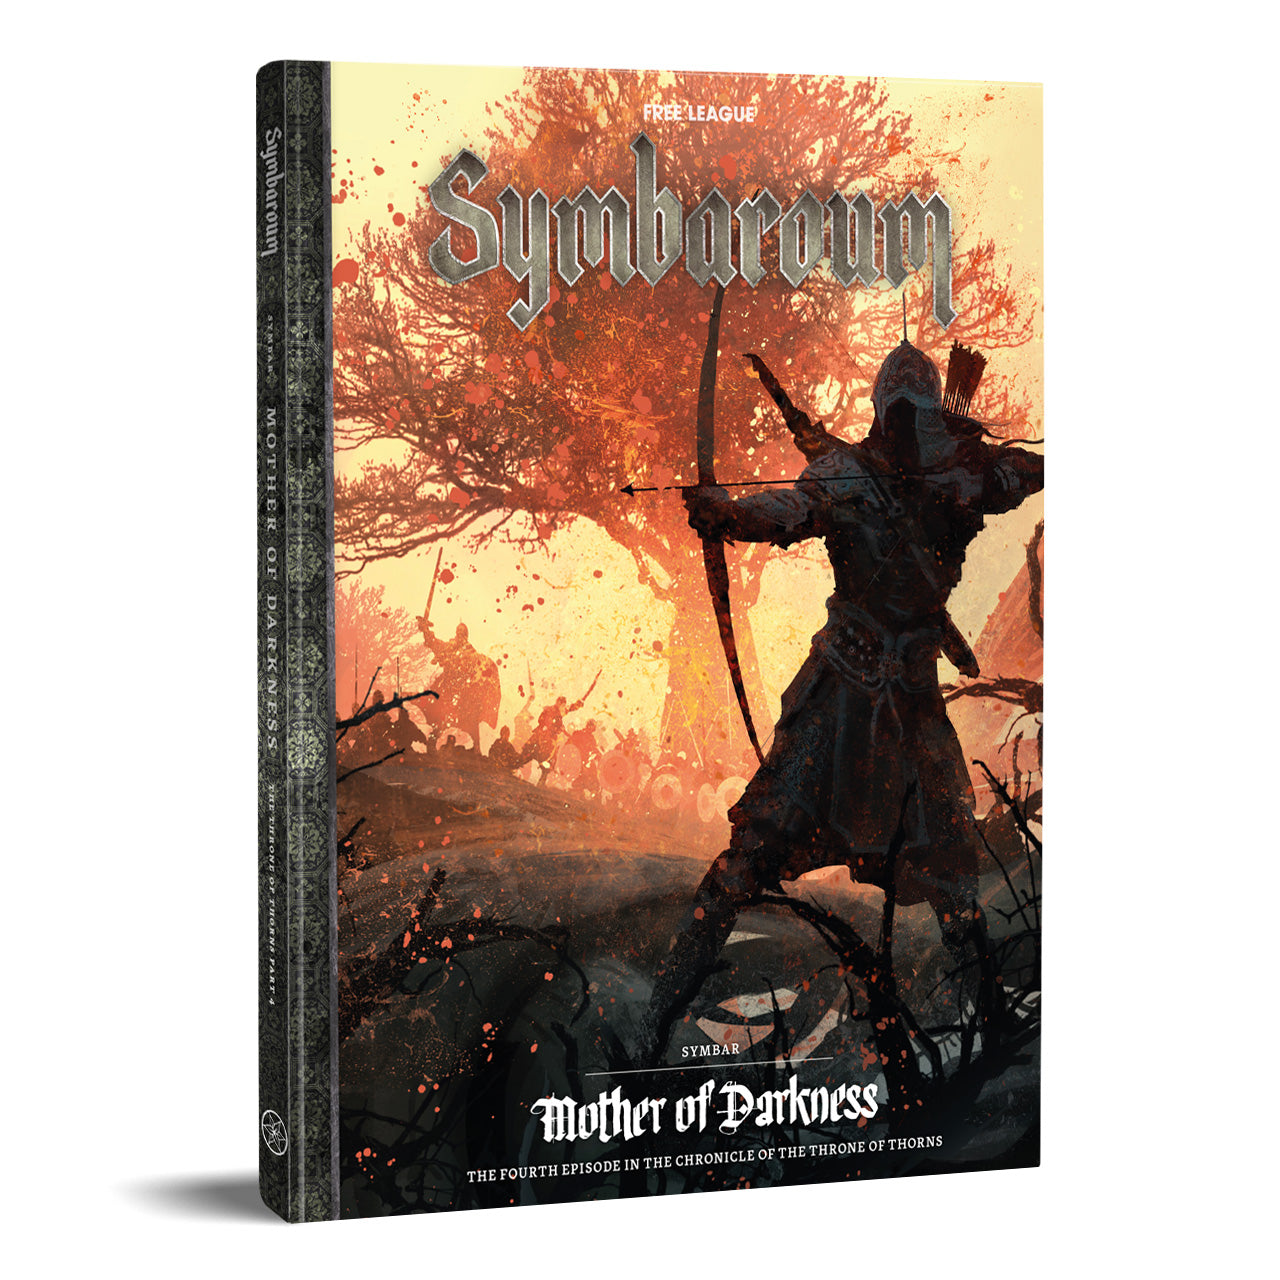 Symbar - Mother of Darkness: Symbaroum RPG -  Free League